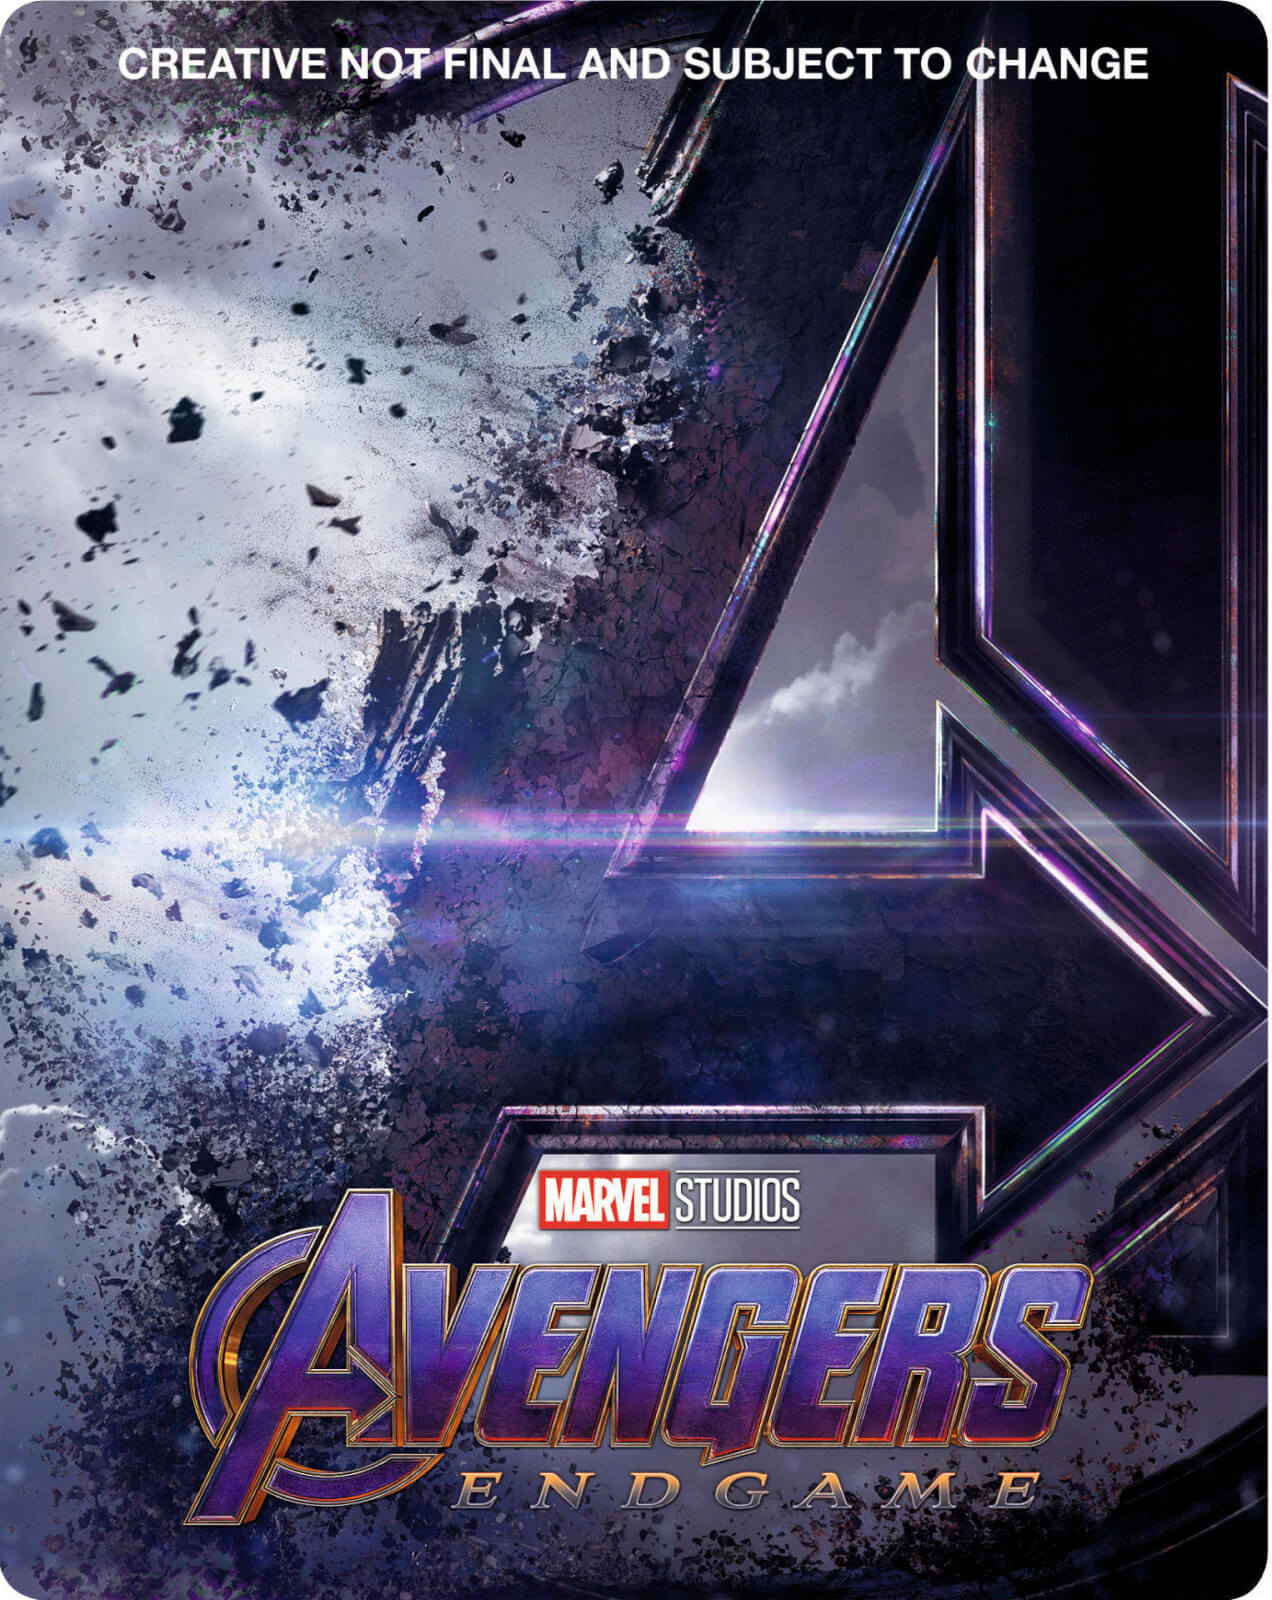 Avengers Endgame Zavvi Exclusive 4k Ultra Hd Steelbook Includes